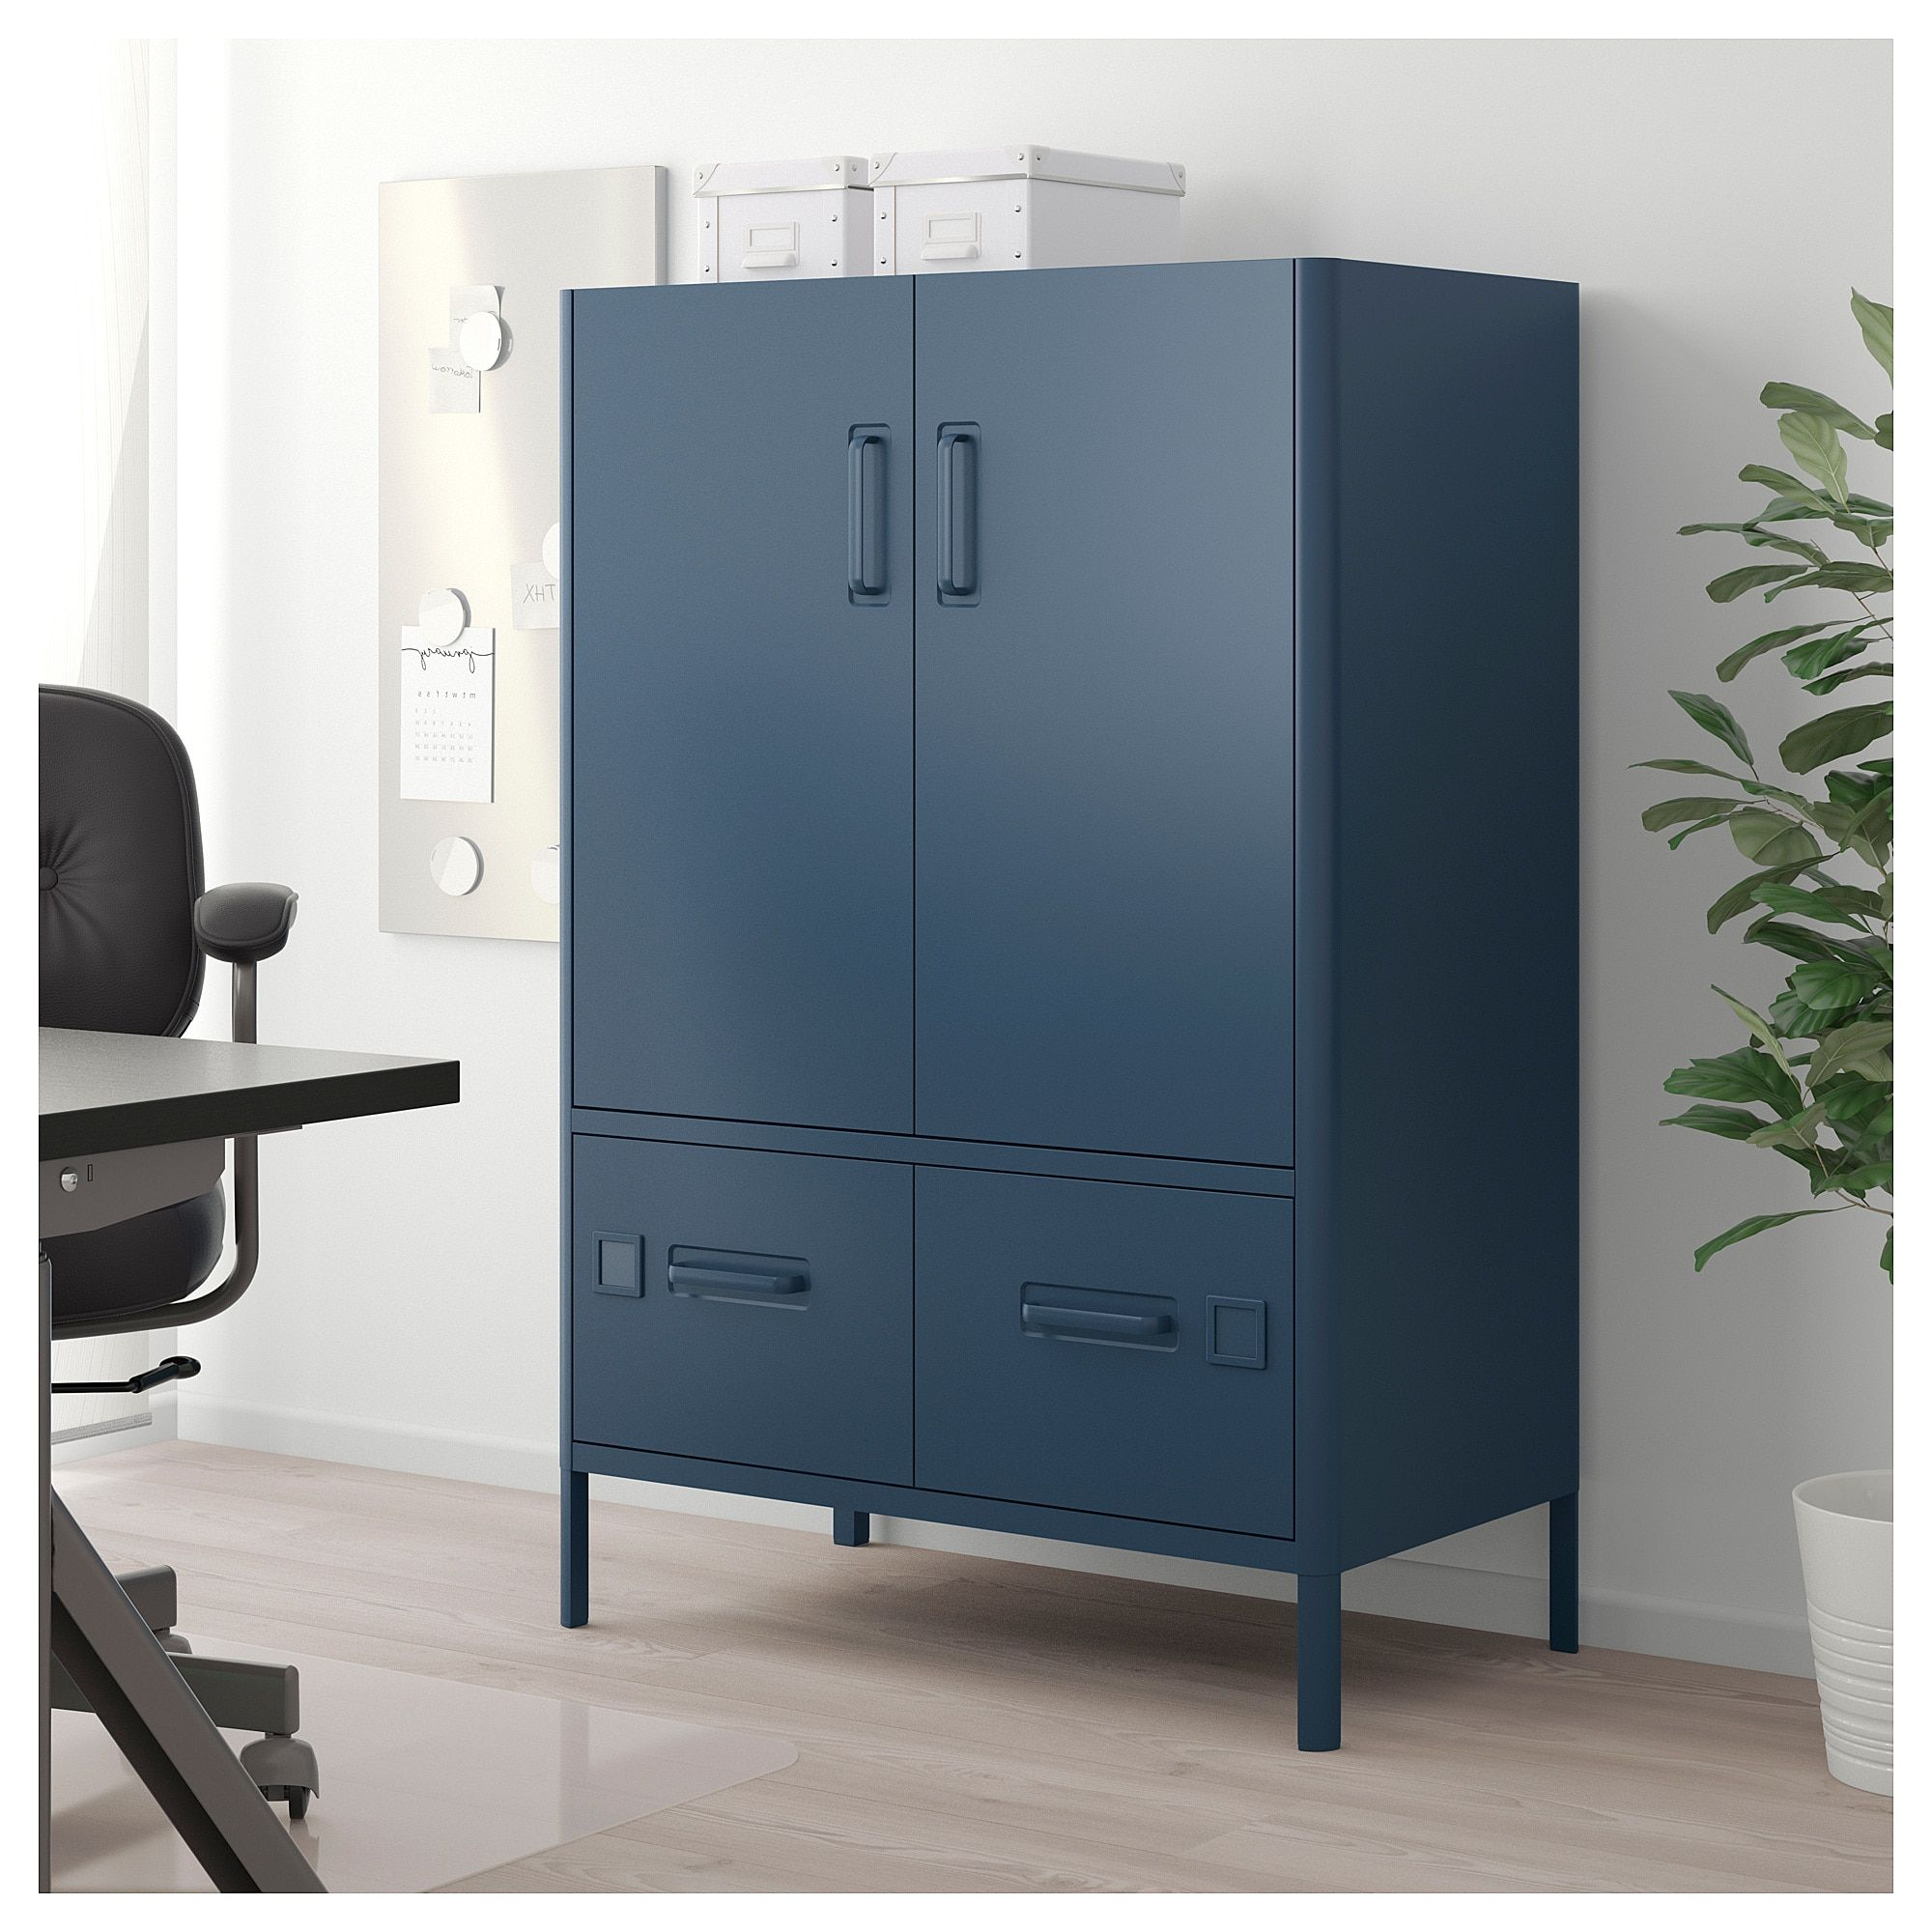 IDÅSEN with doors and drawers blue IKEA